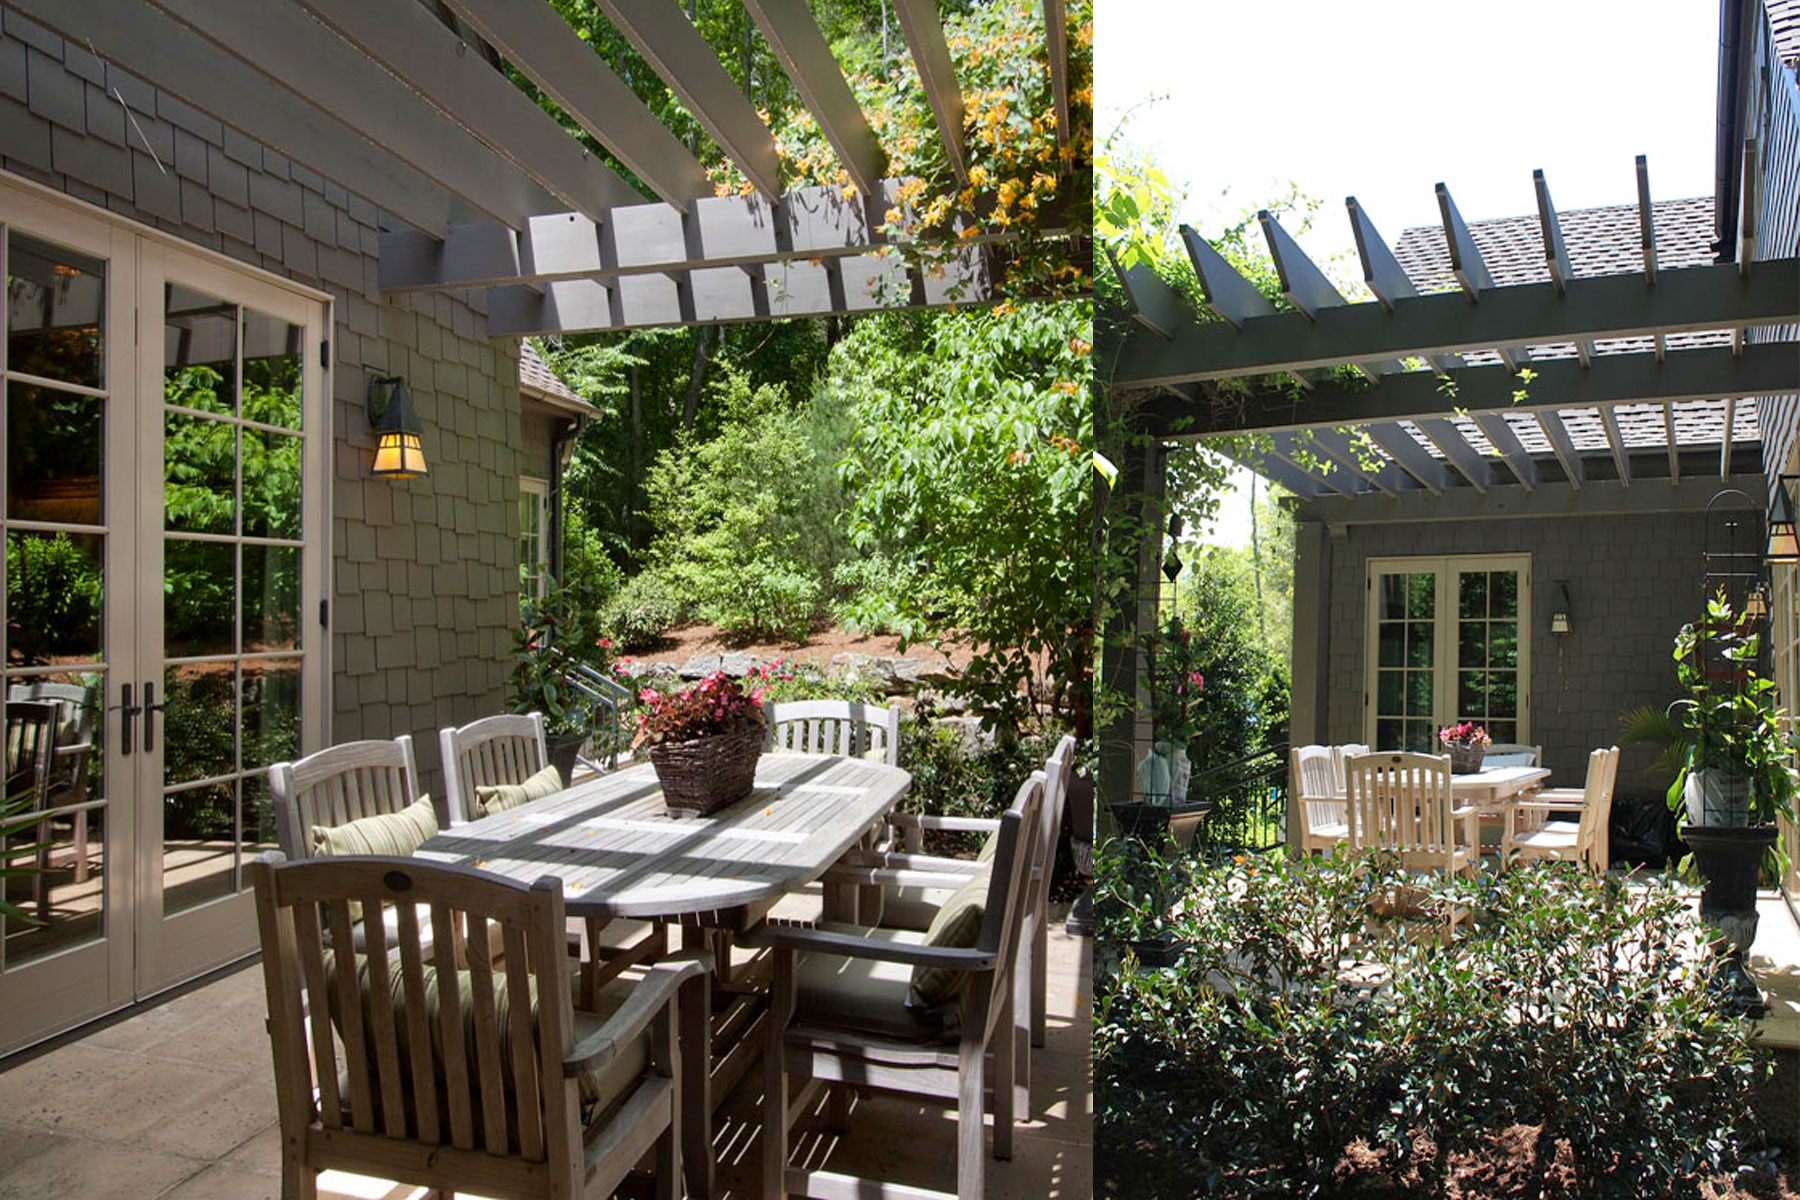 Dining patio with pergola